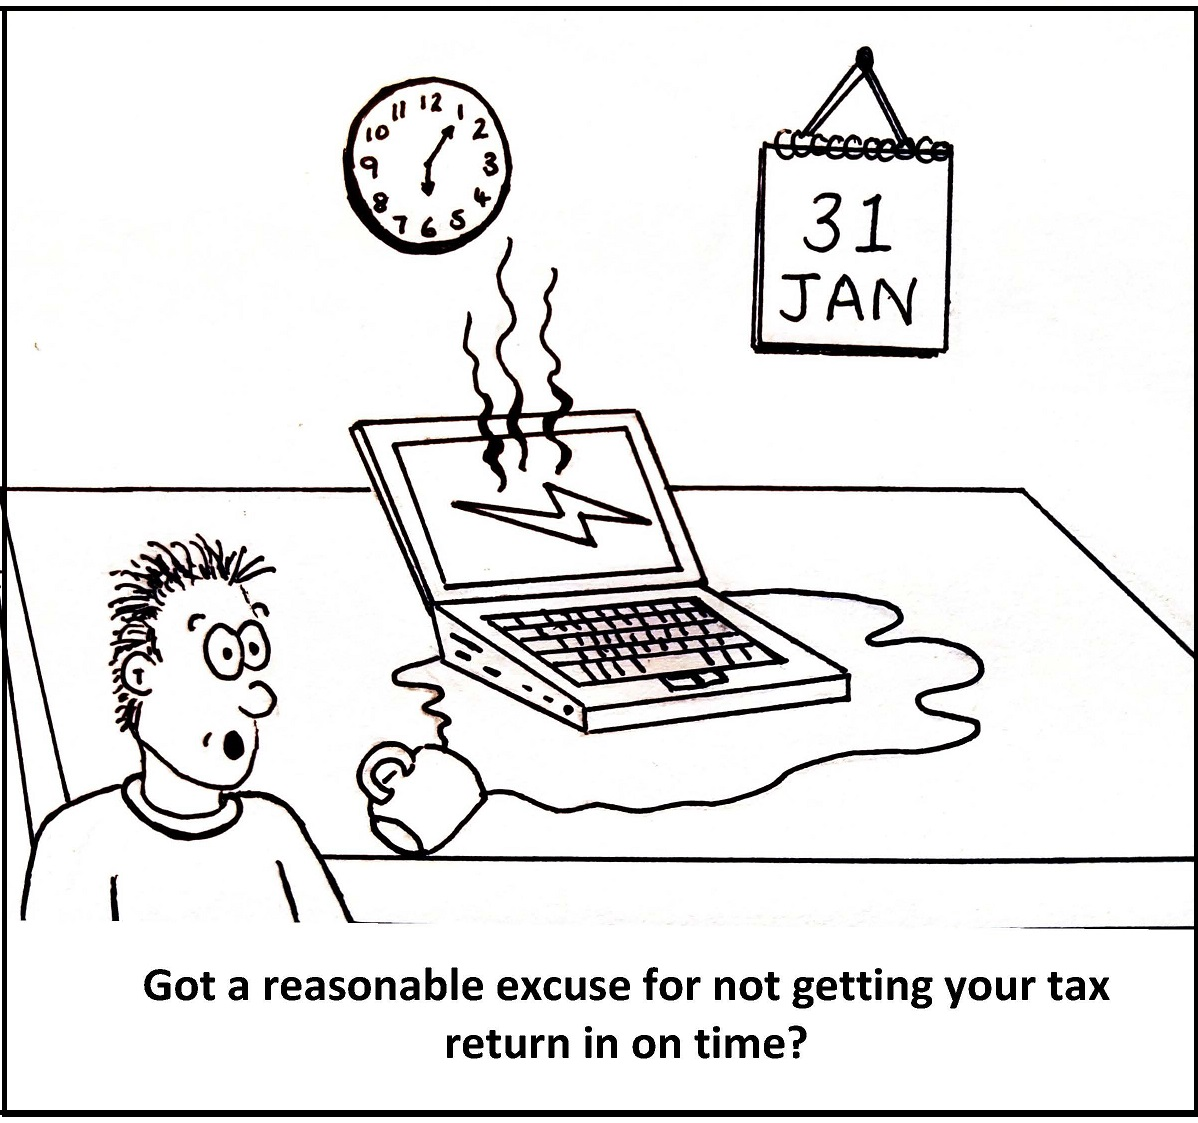 Got a reasonable excuse for not getting your tax return in on time?